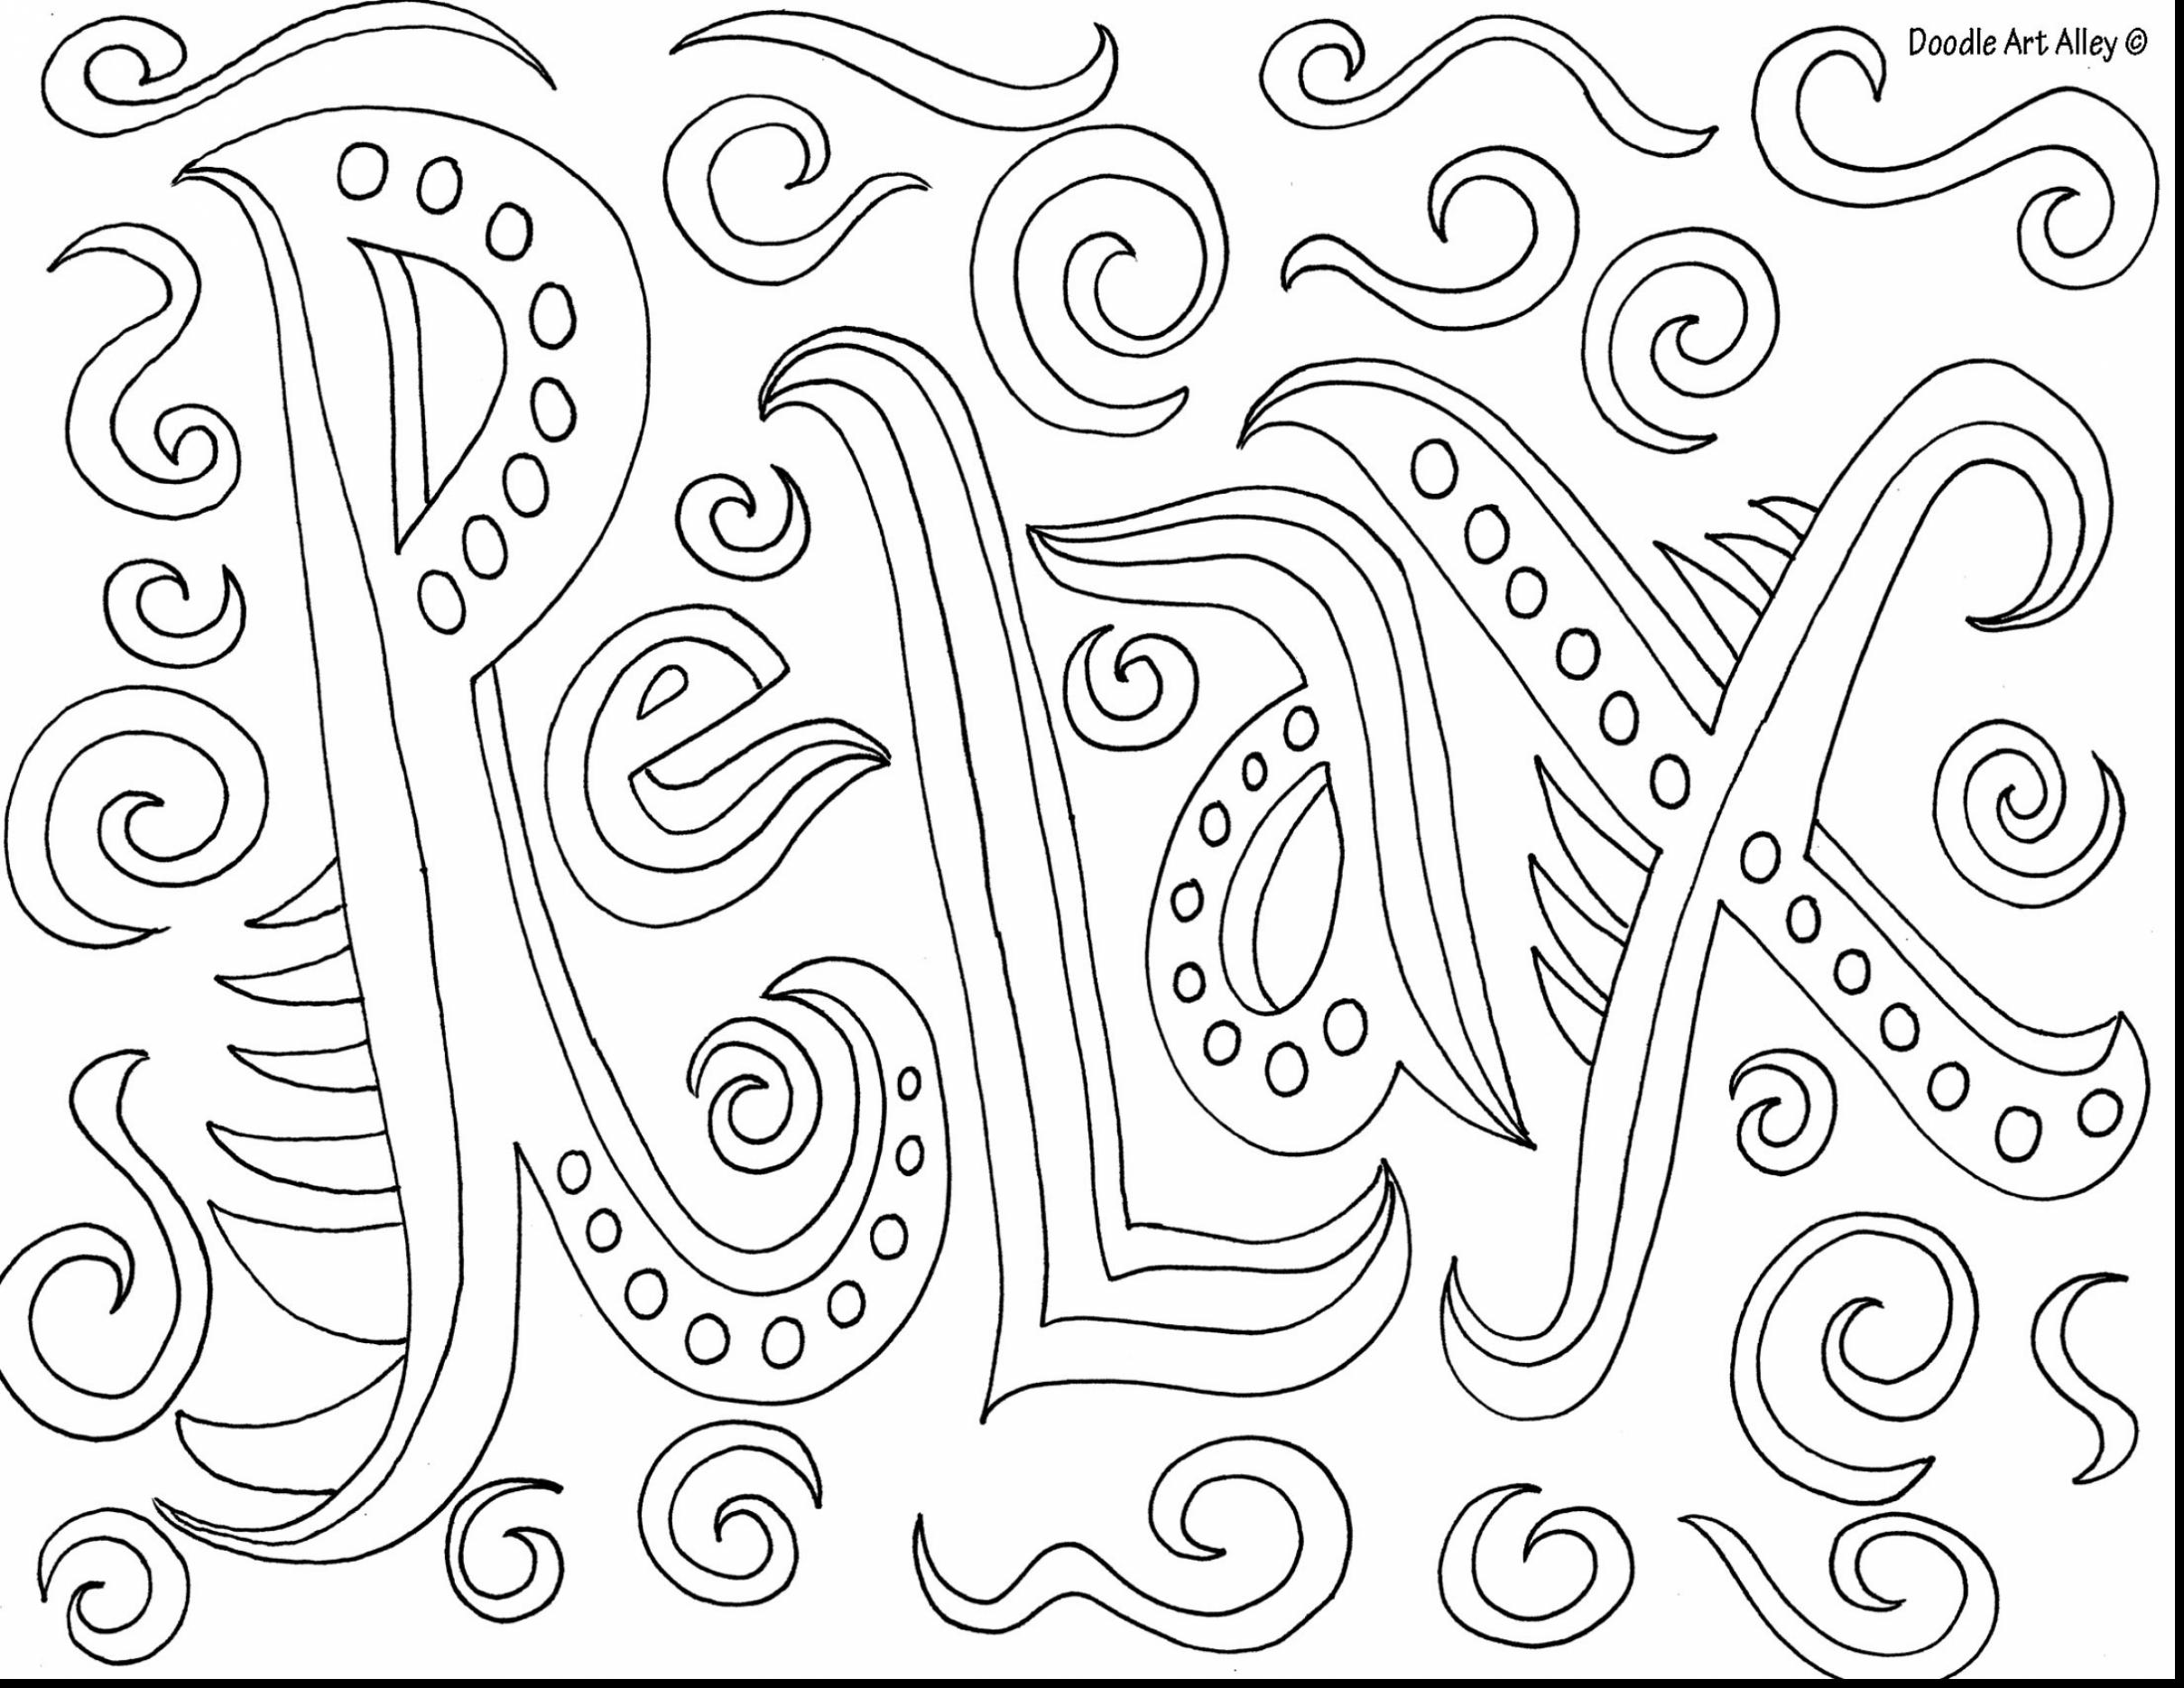 2420x1870 New Therapeutic Coloring Pages For Children Therapy To Download